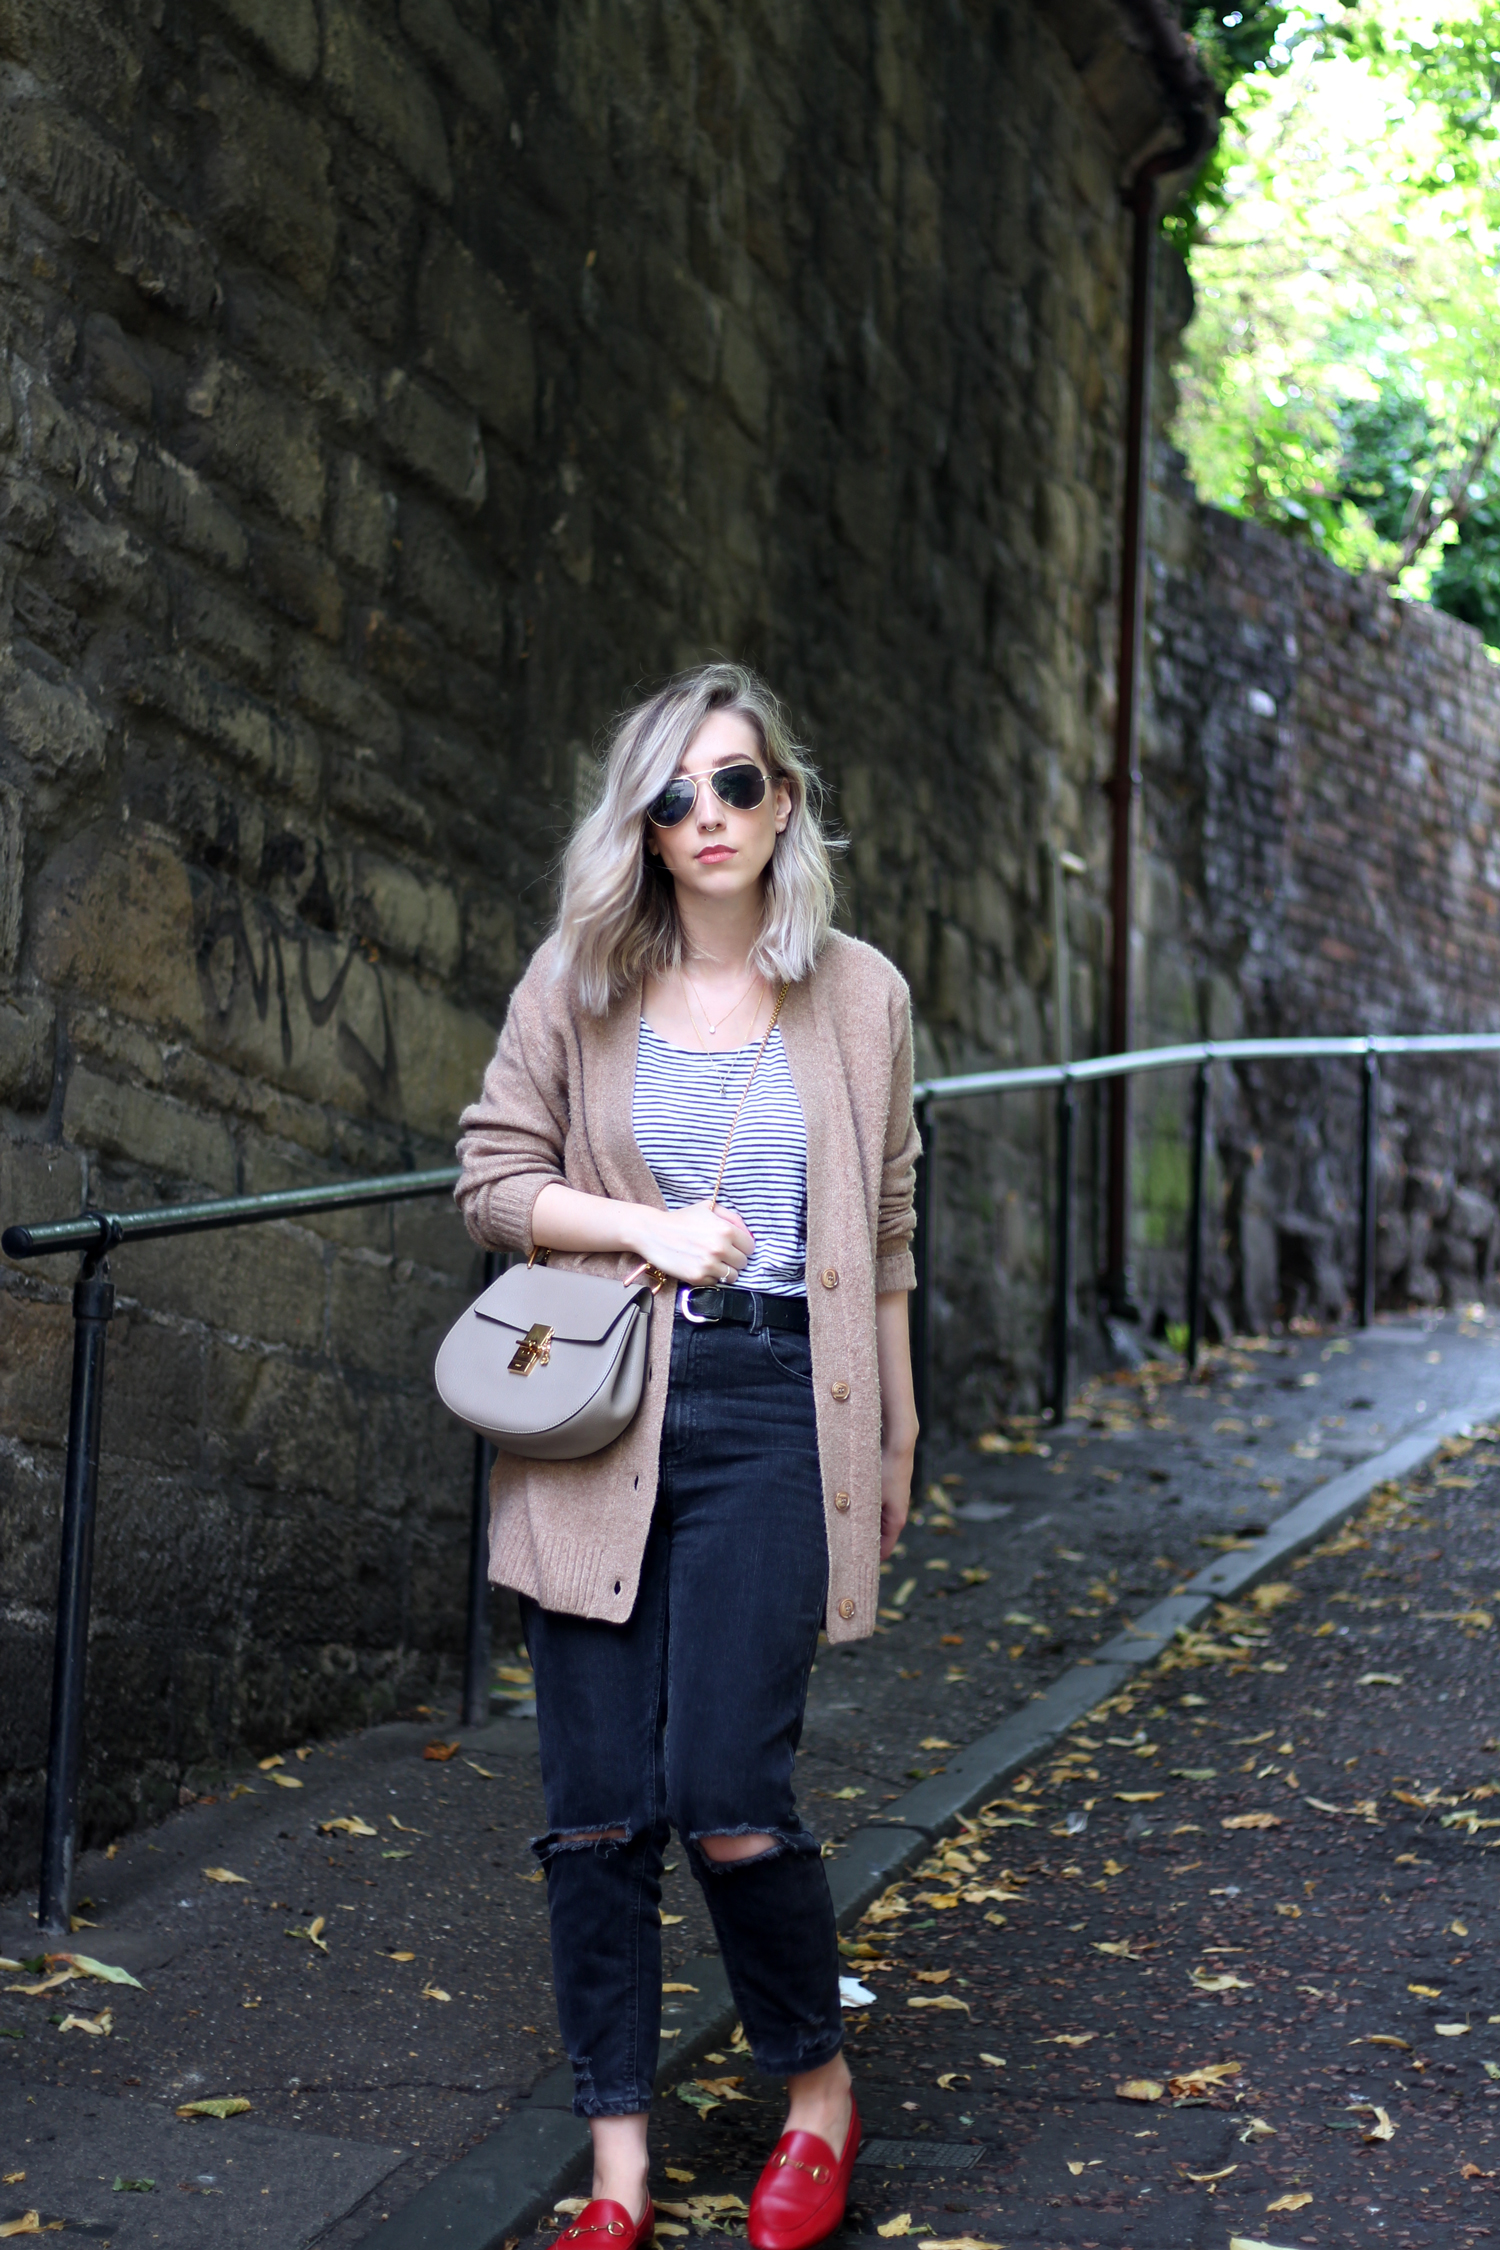 sunglasses-camel-cardigan-asos-ripped-boyfriend-jeans-3